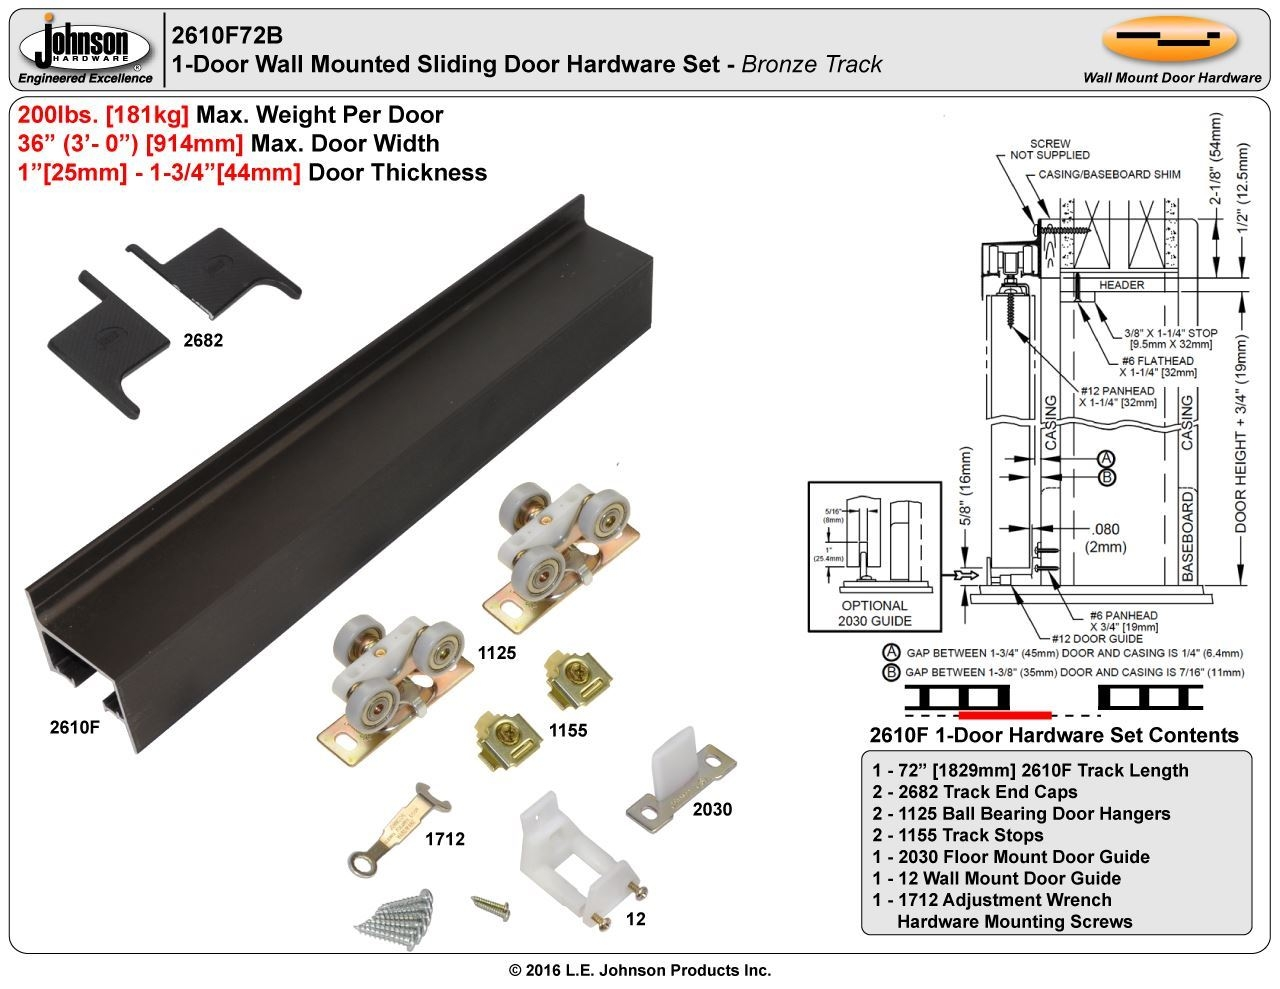 36 Pocket Door Track 36 Pocket Door Track johnson hardware 2610f wall mount sliding door hardware 1280 X 989